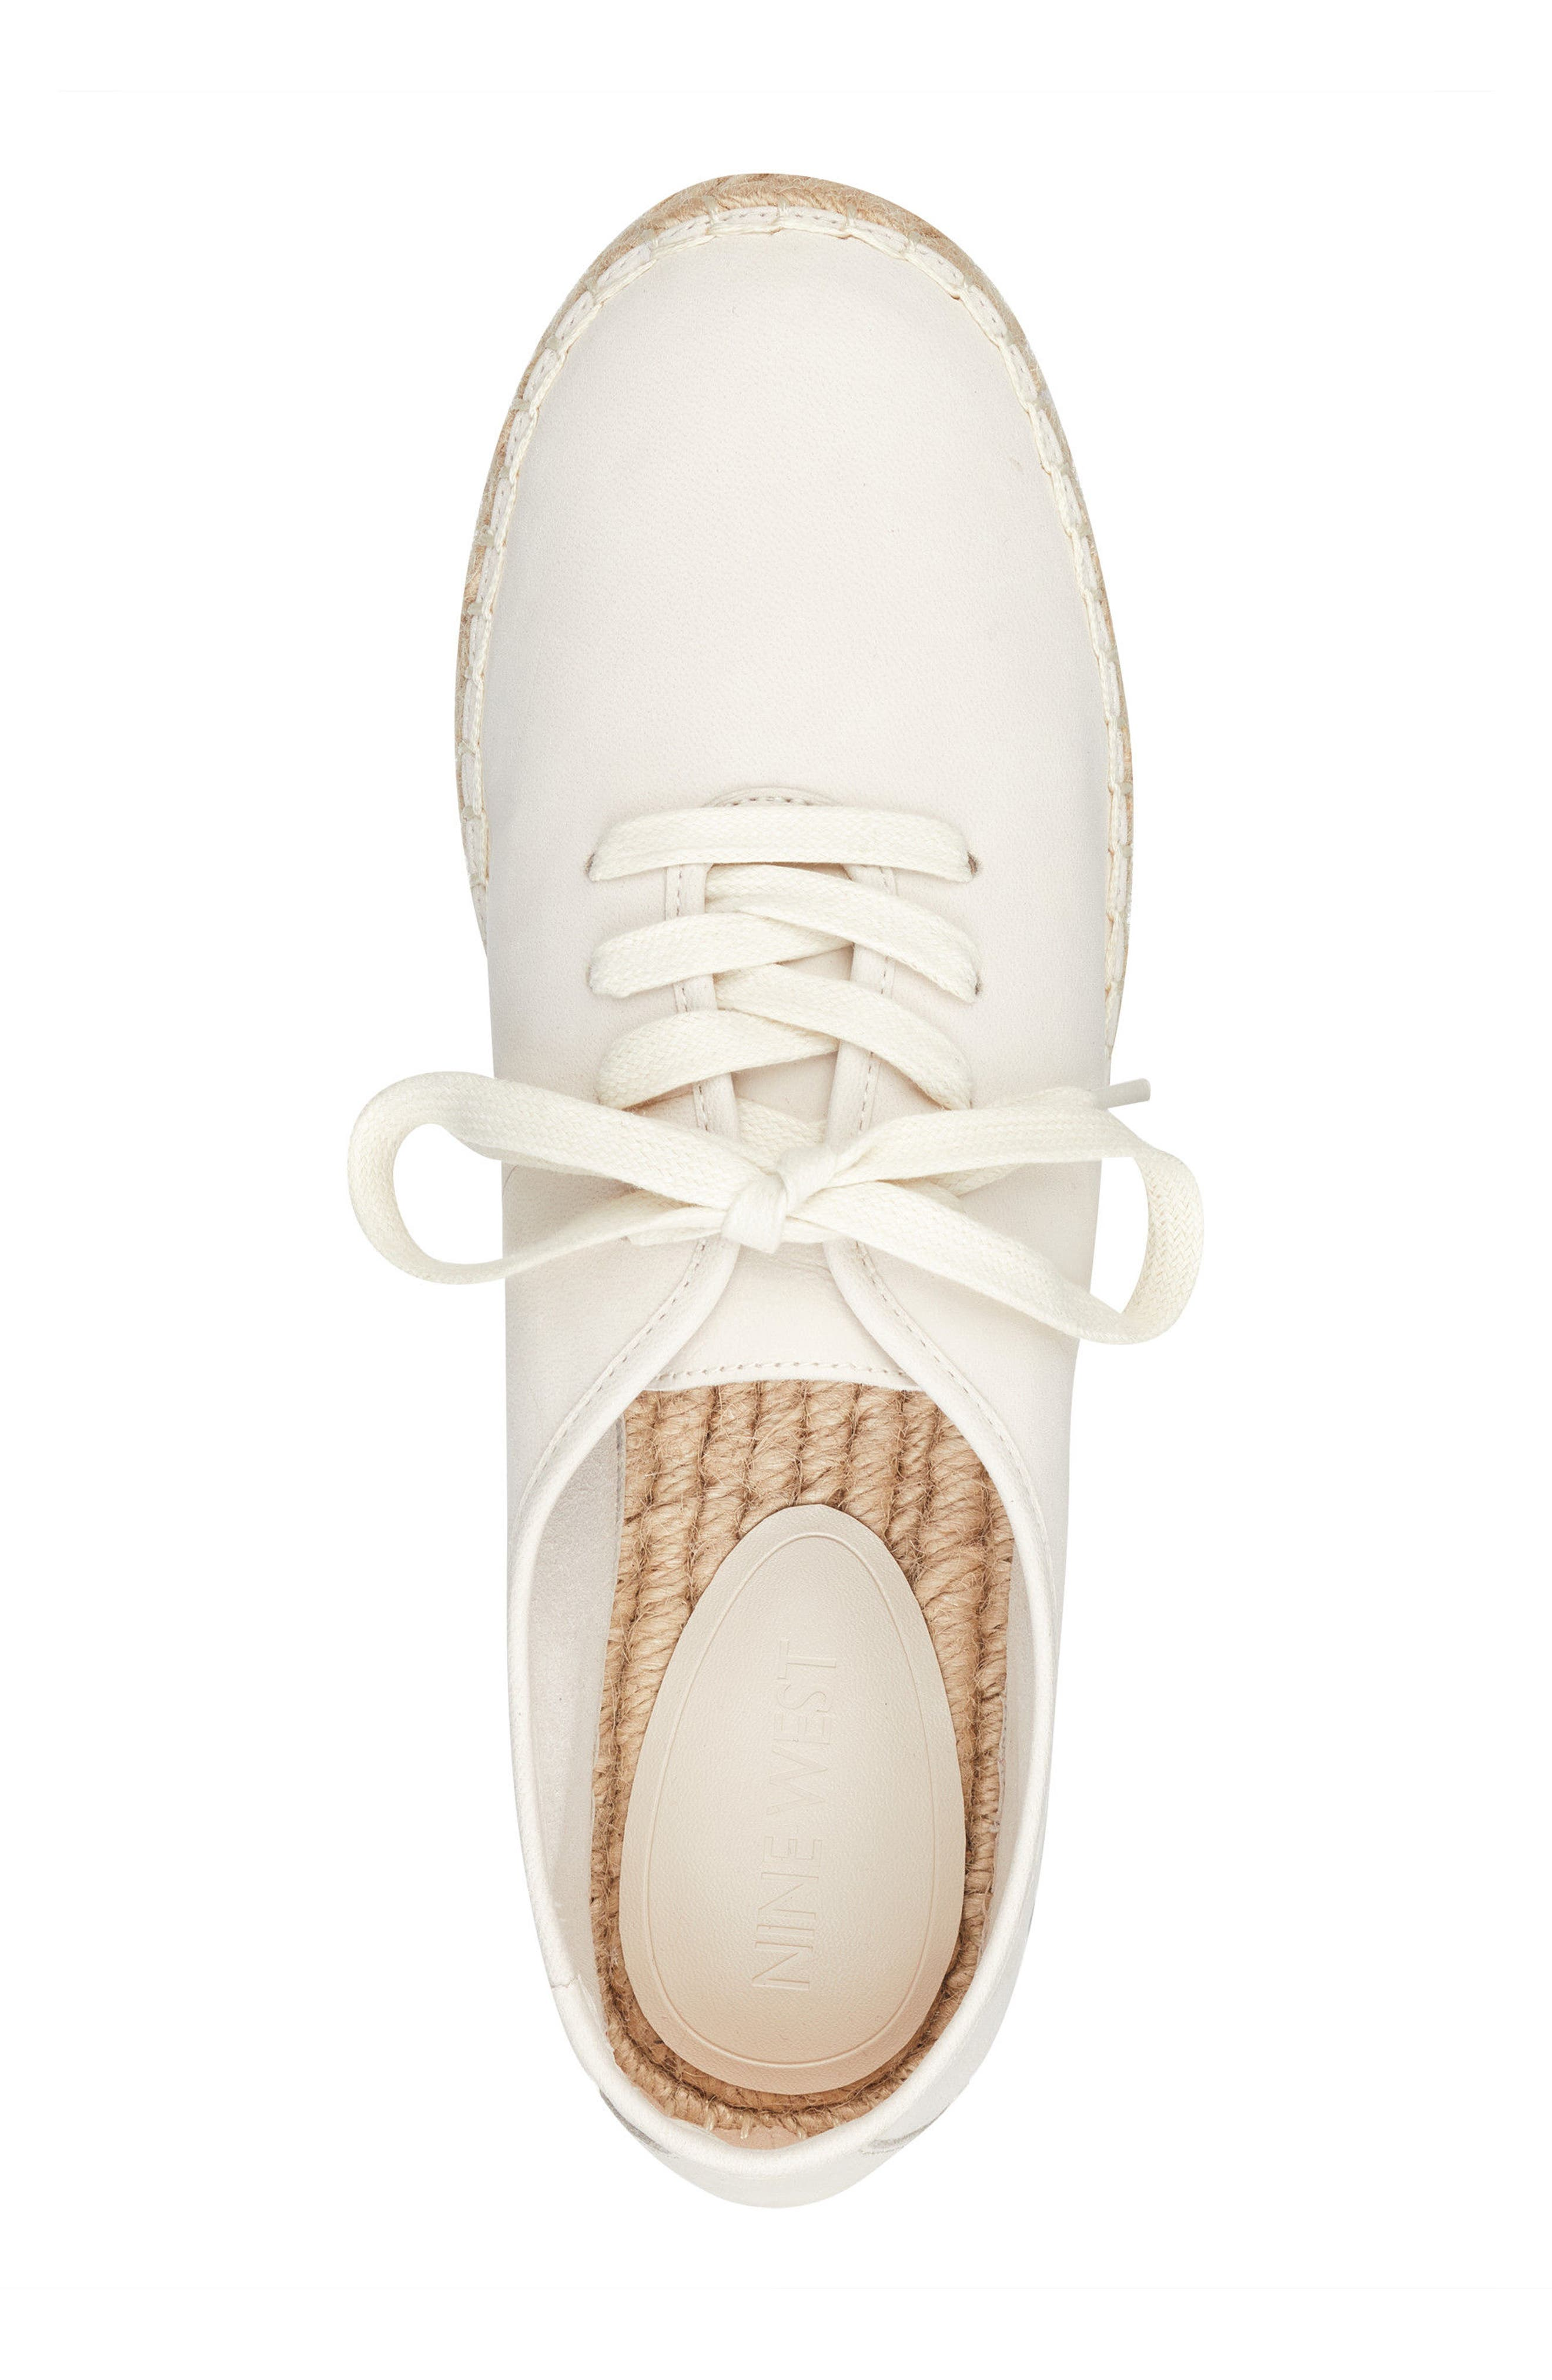 Gingerbread Espadrille Sneaker,                             Alternate thumbnail 5, color,                             OFF WHITE LEATHER